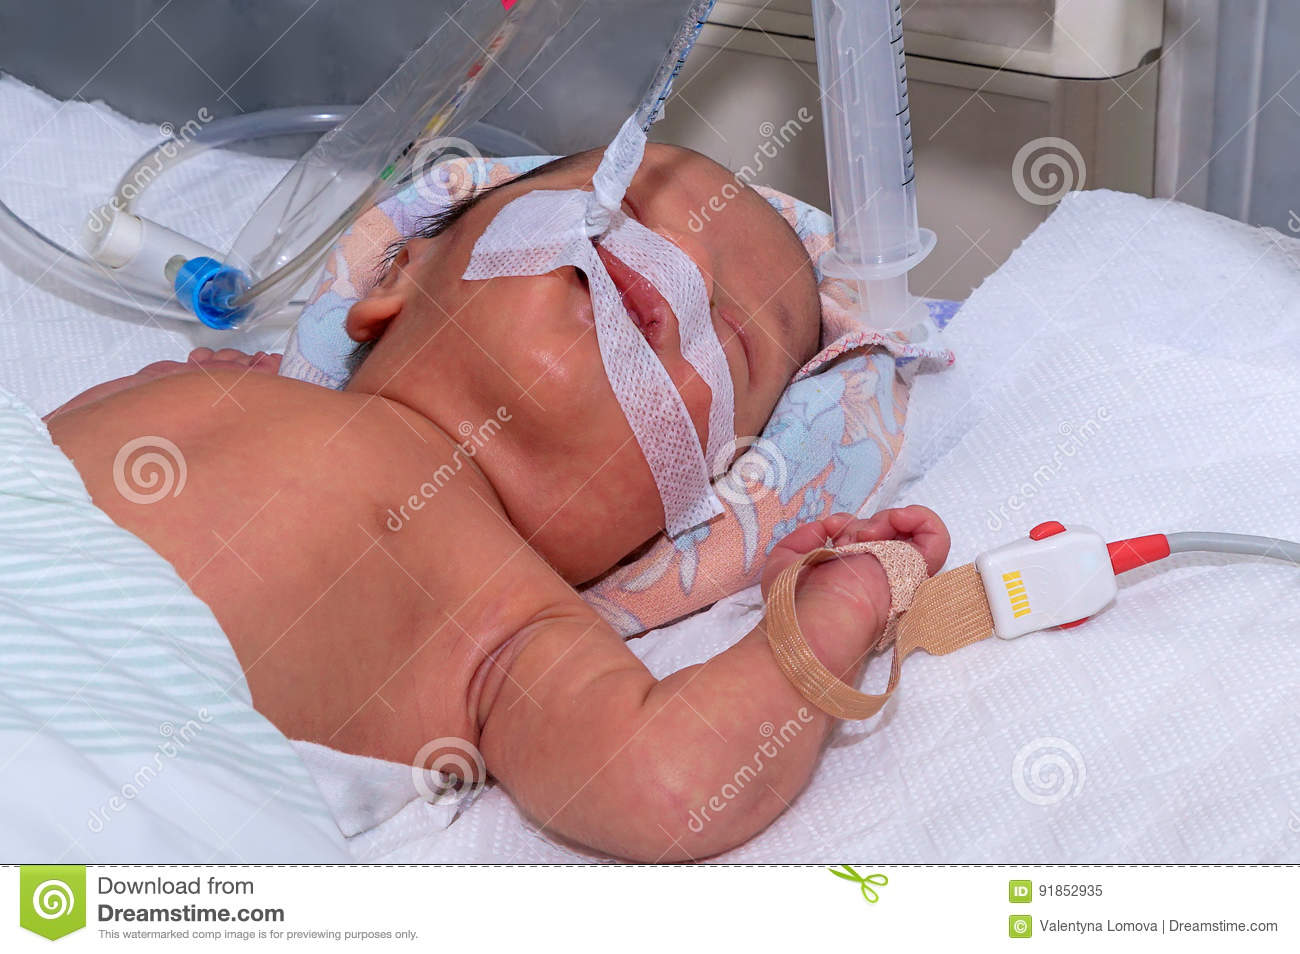 Newborn baby with hyperbilirubinemia on breathing machine with pulse oximeter sensor in neonatal intensive care unit at children`s